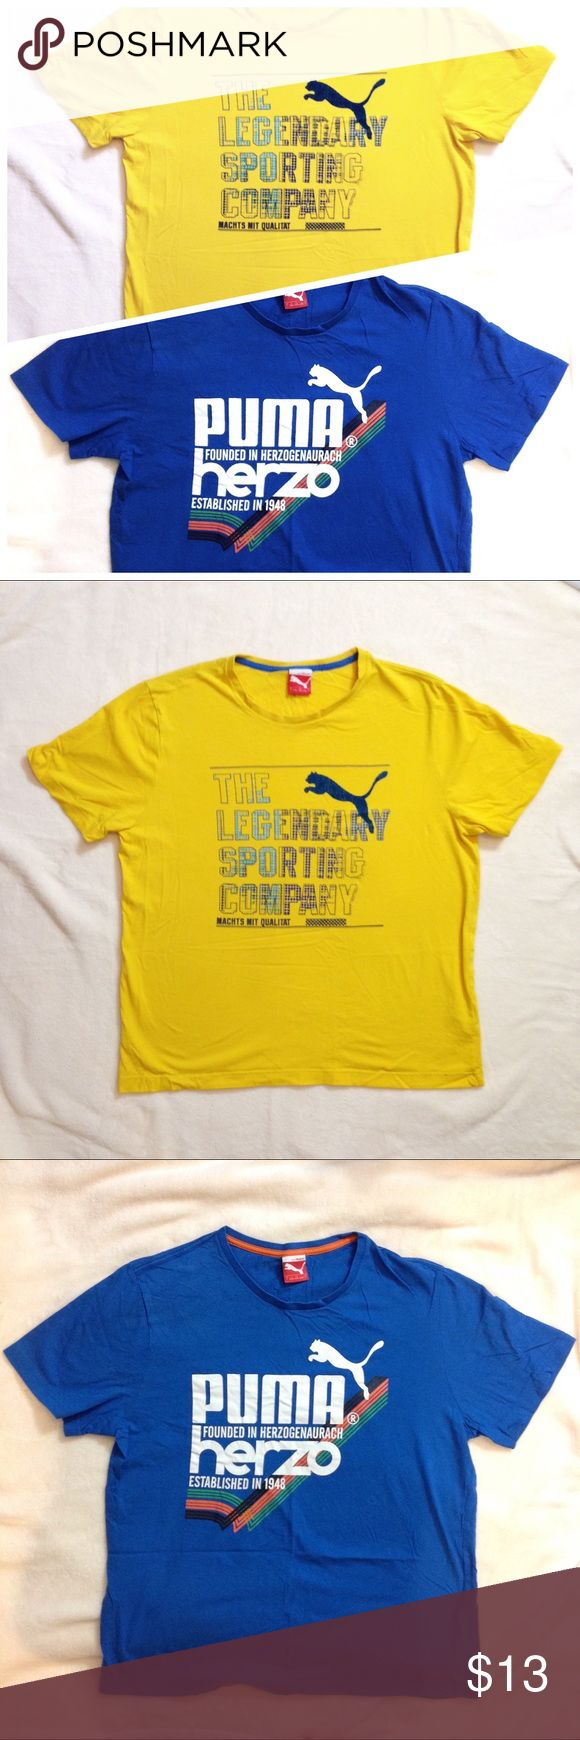 Set of 2 puma t-shirts Very gently used. Great condition. Pit to pit 42 inches, length 24 inches. 100% cotton. Puma Shirts Tees - Short Sleeve